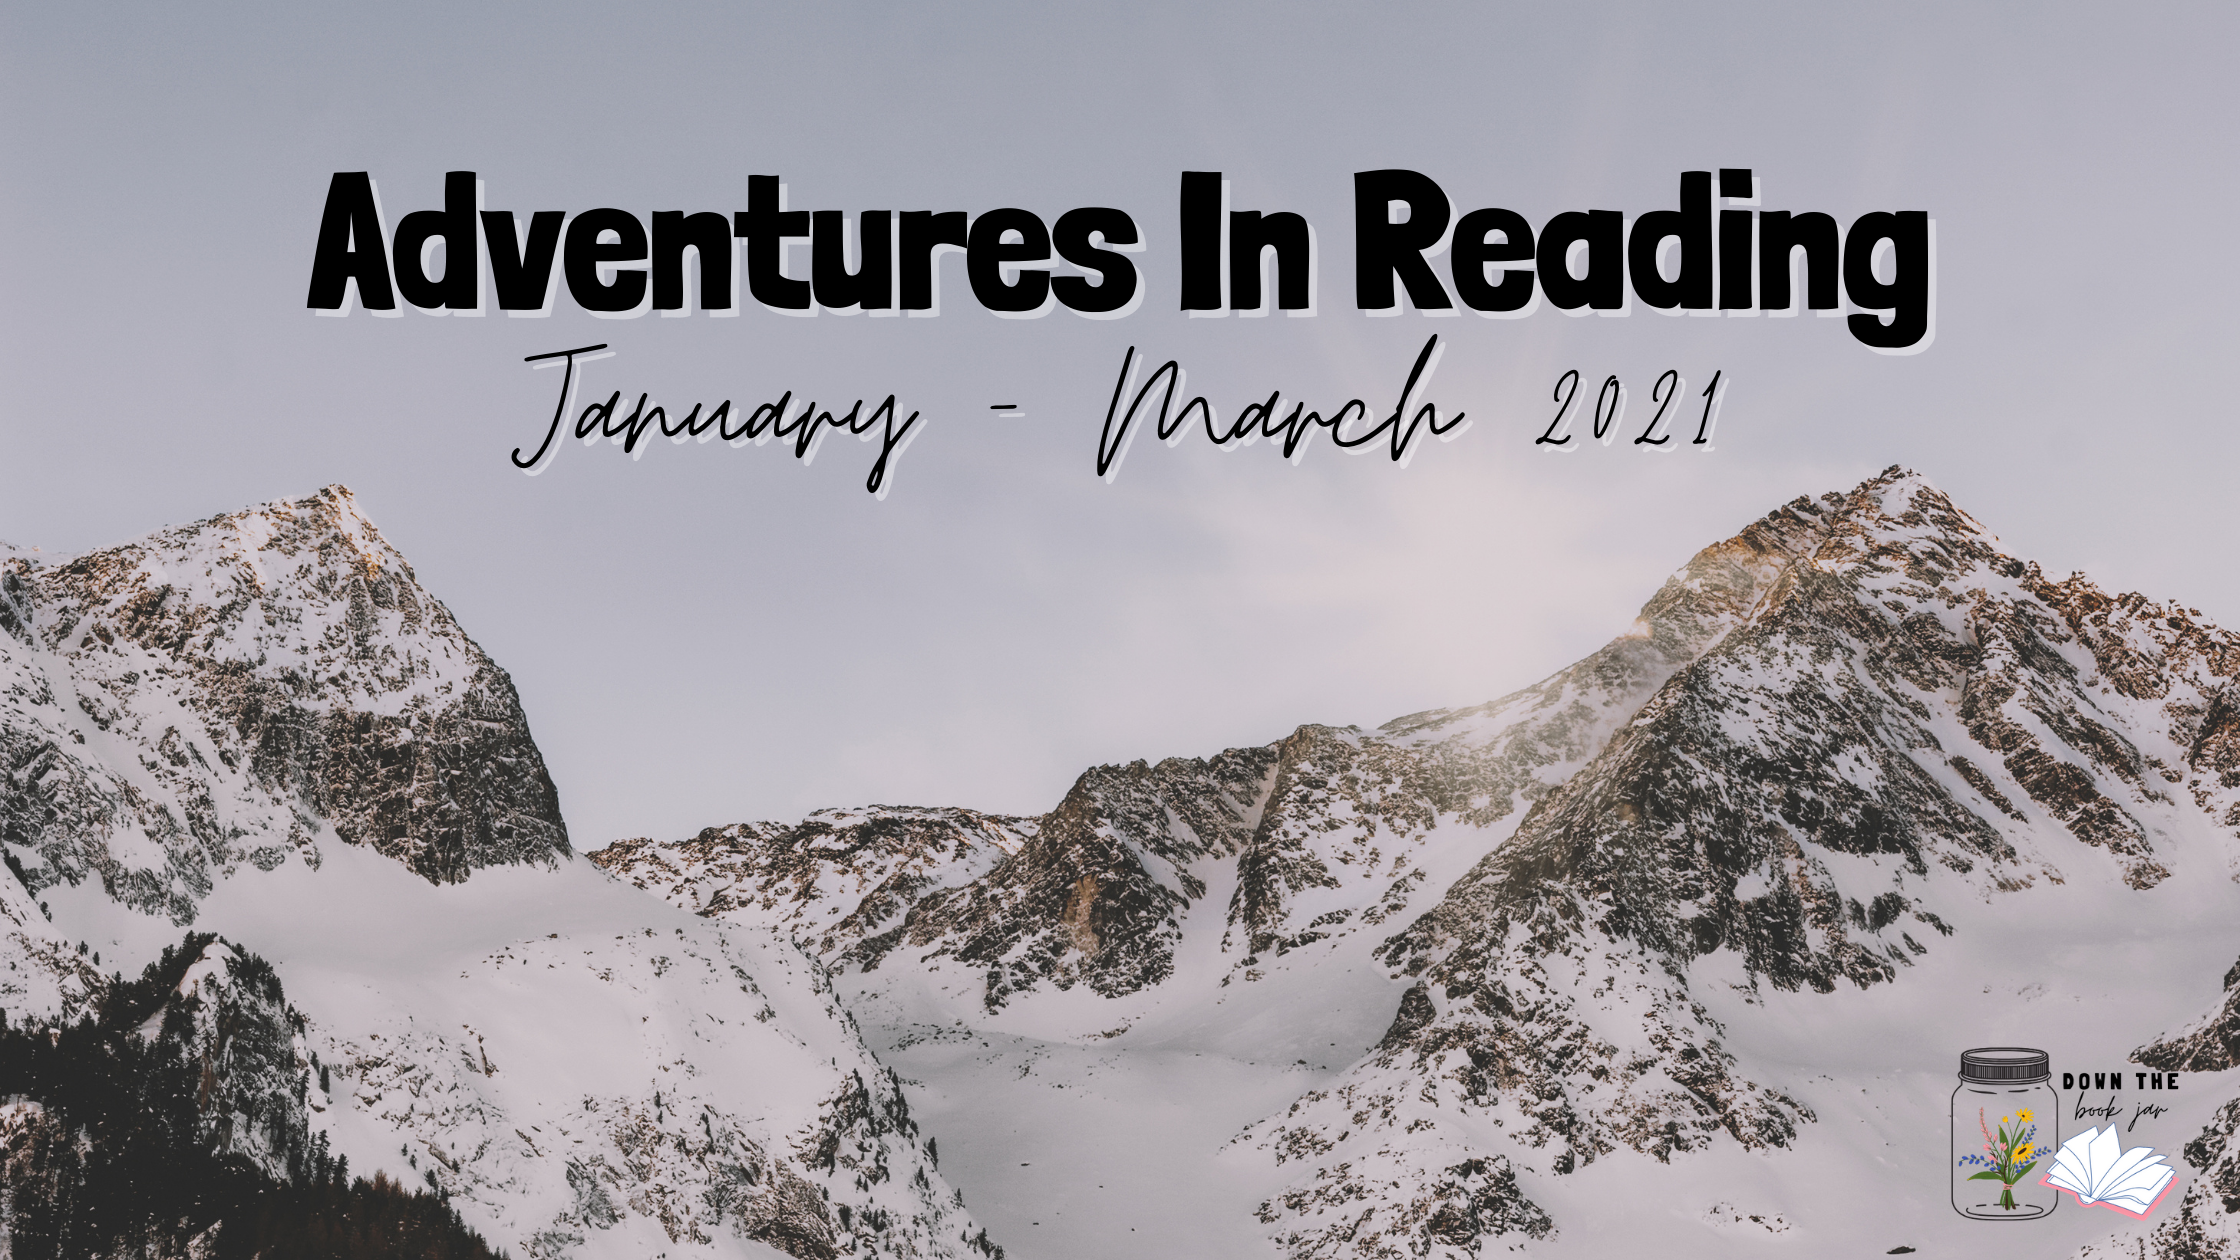 Adventures in Reading – January through March 2021